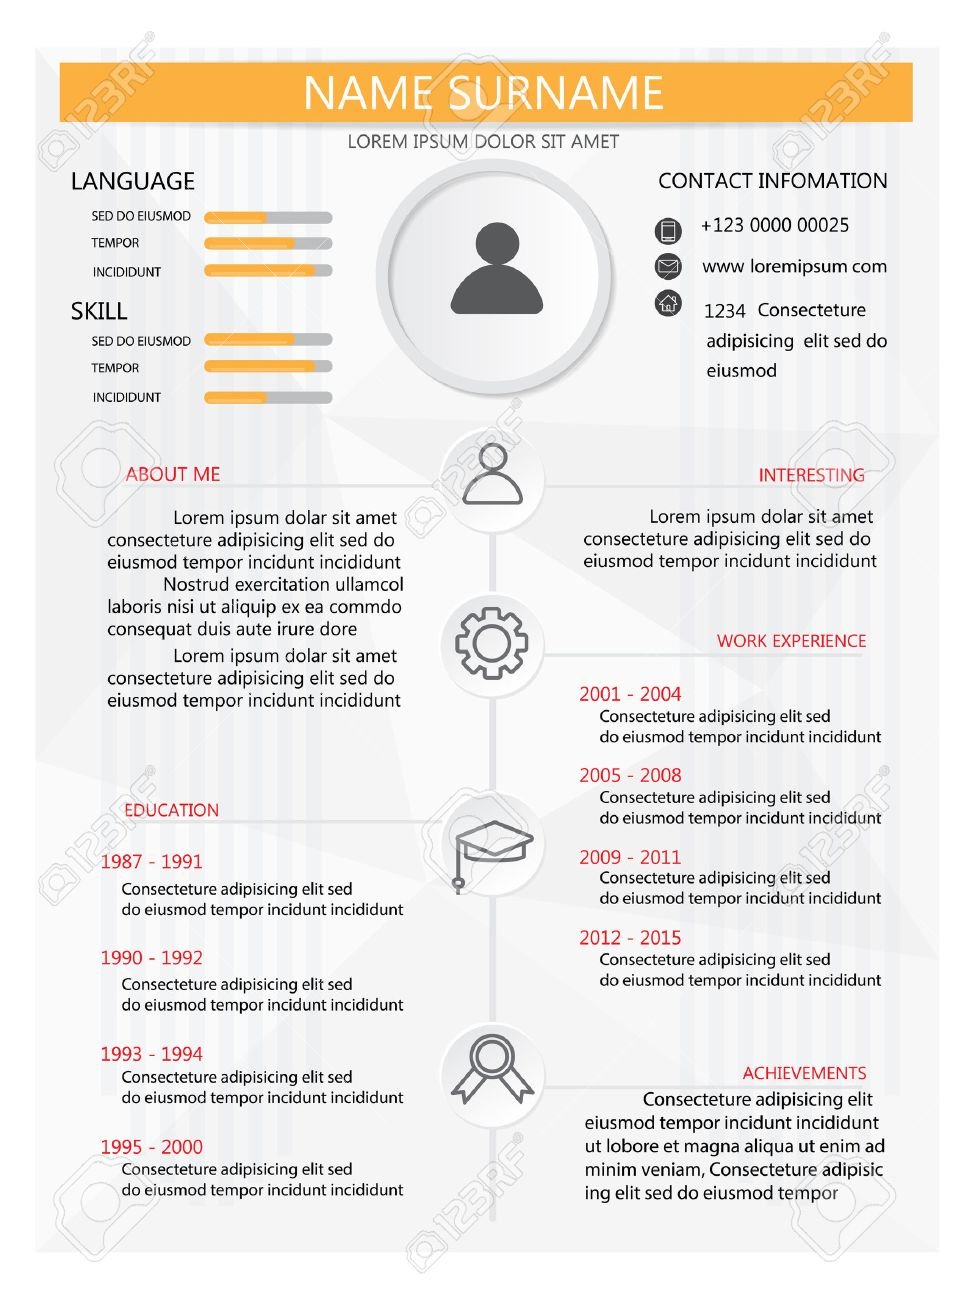 resume cv template infographics background and element can resume cv template infographics background and element can be used for personal statistic